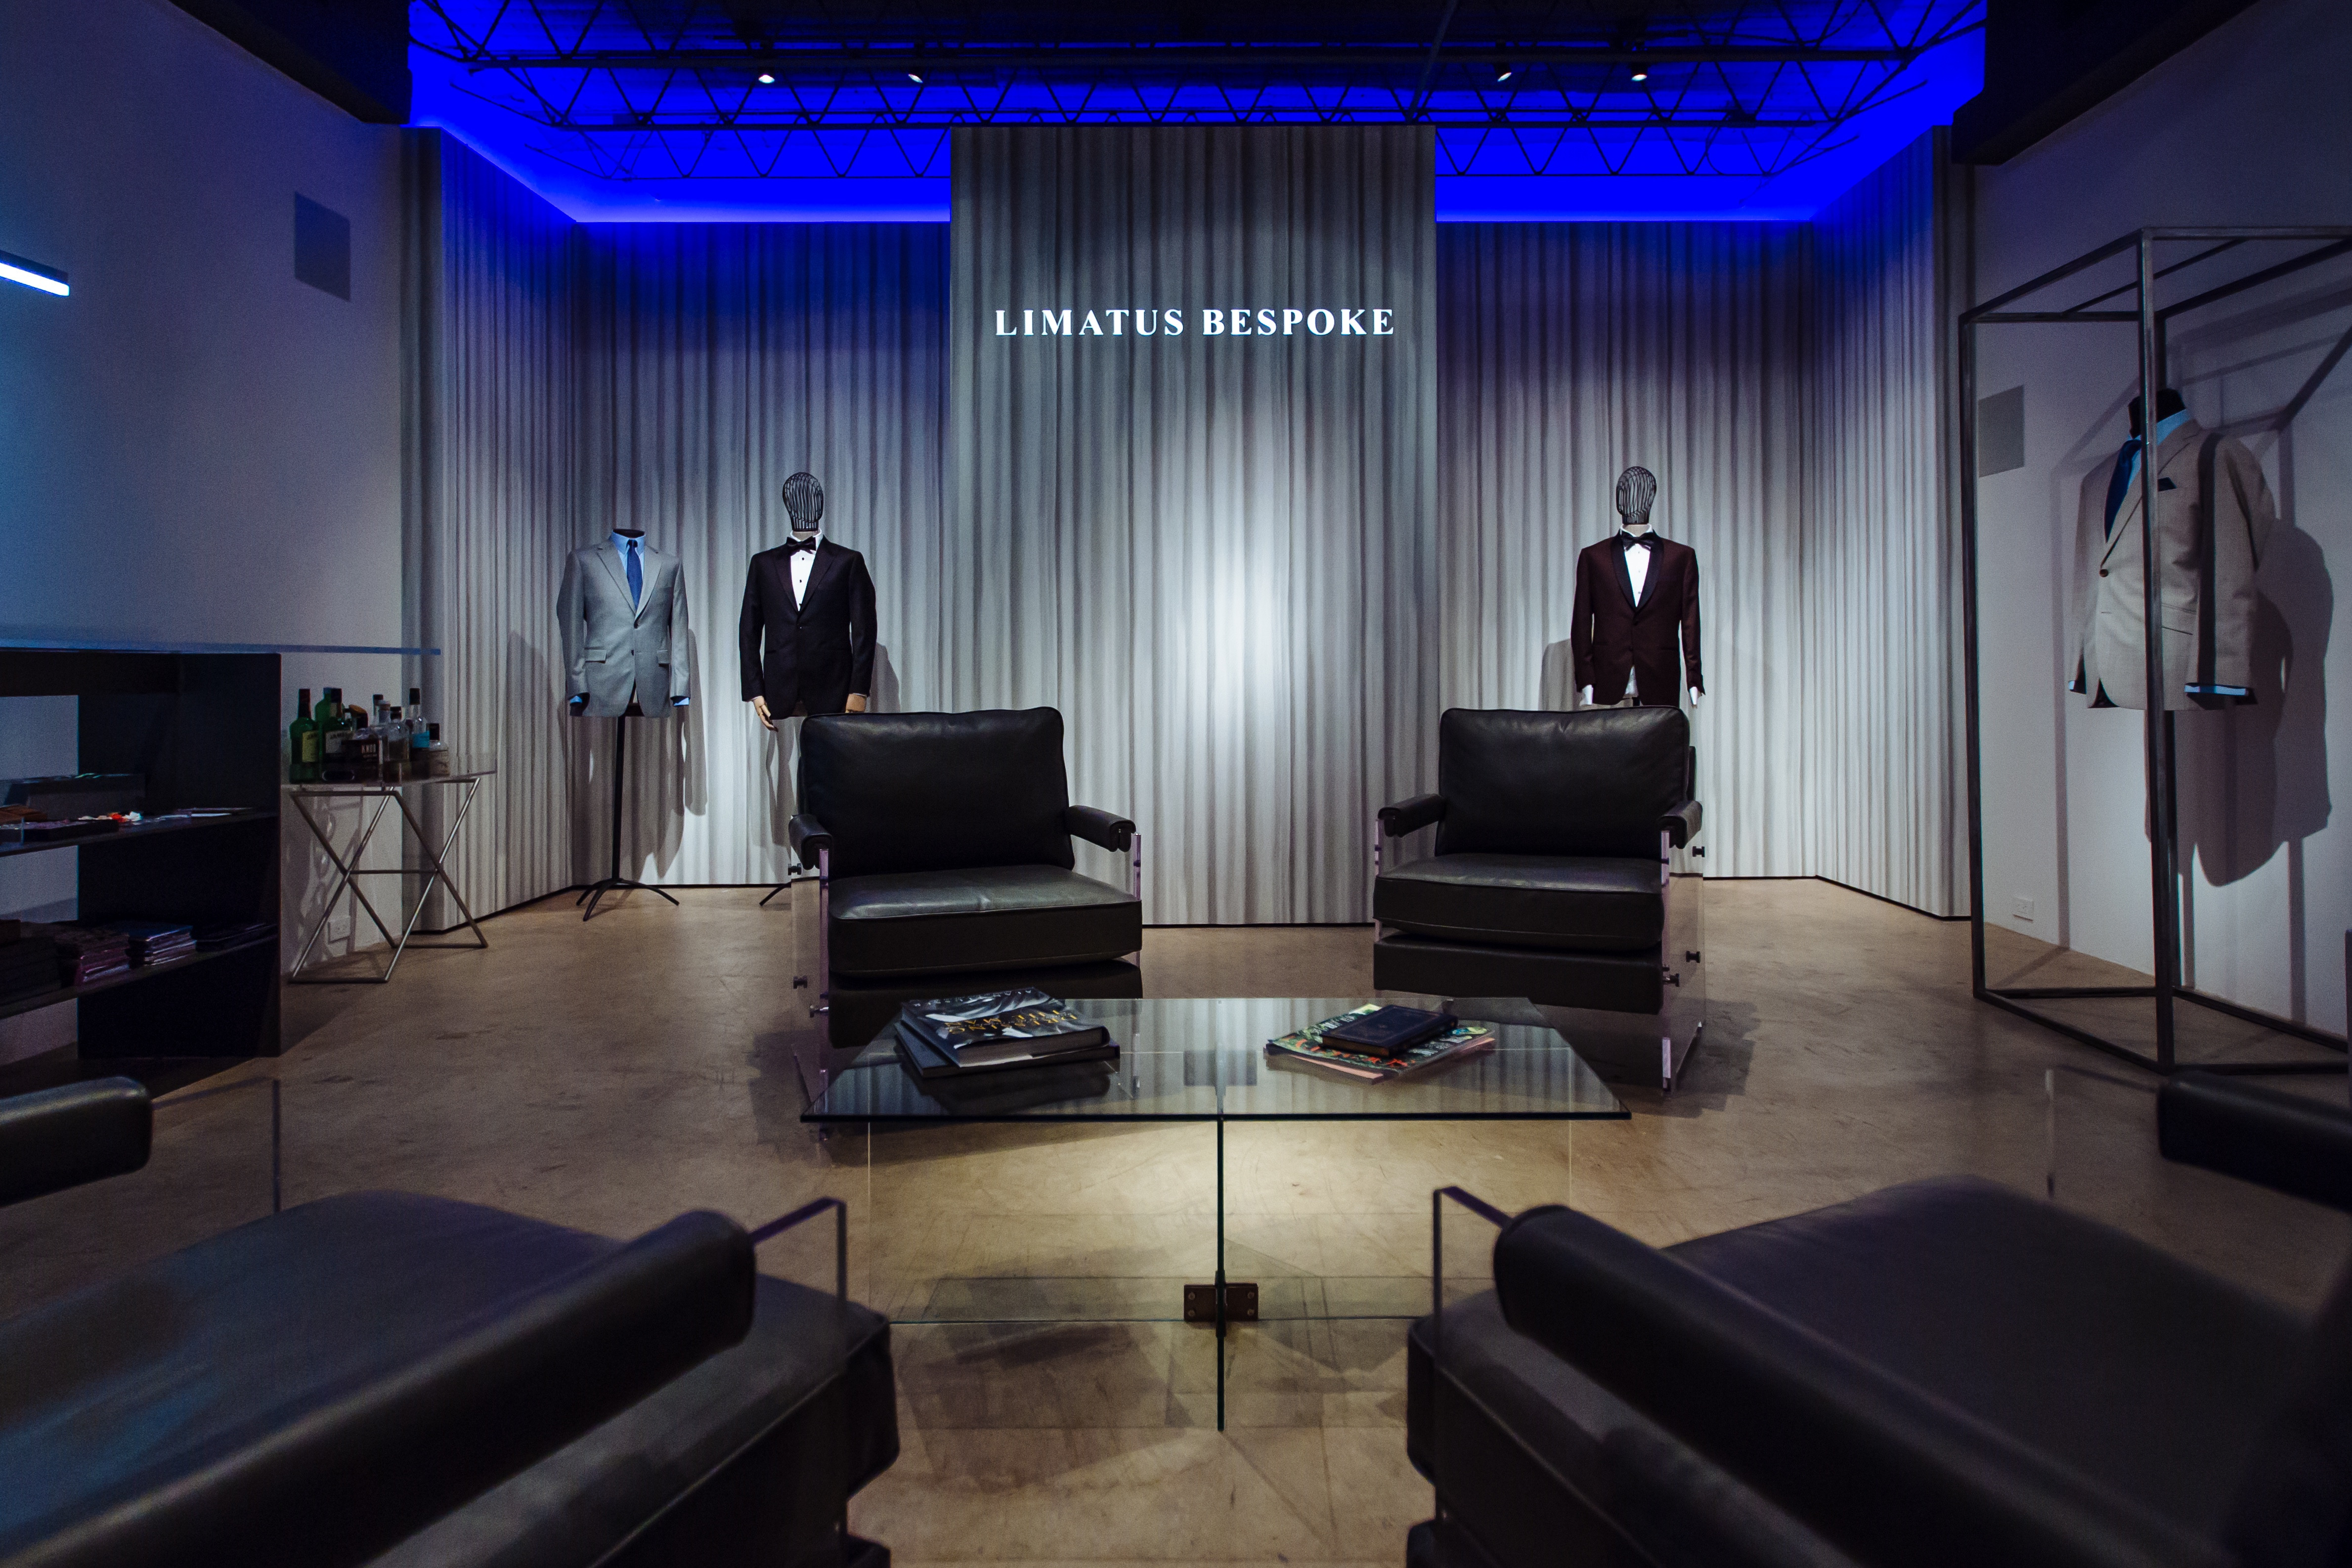 The Bespoke Experience